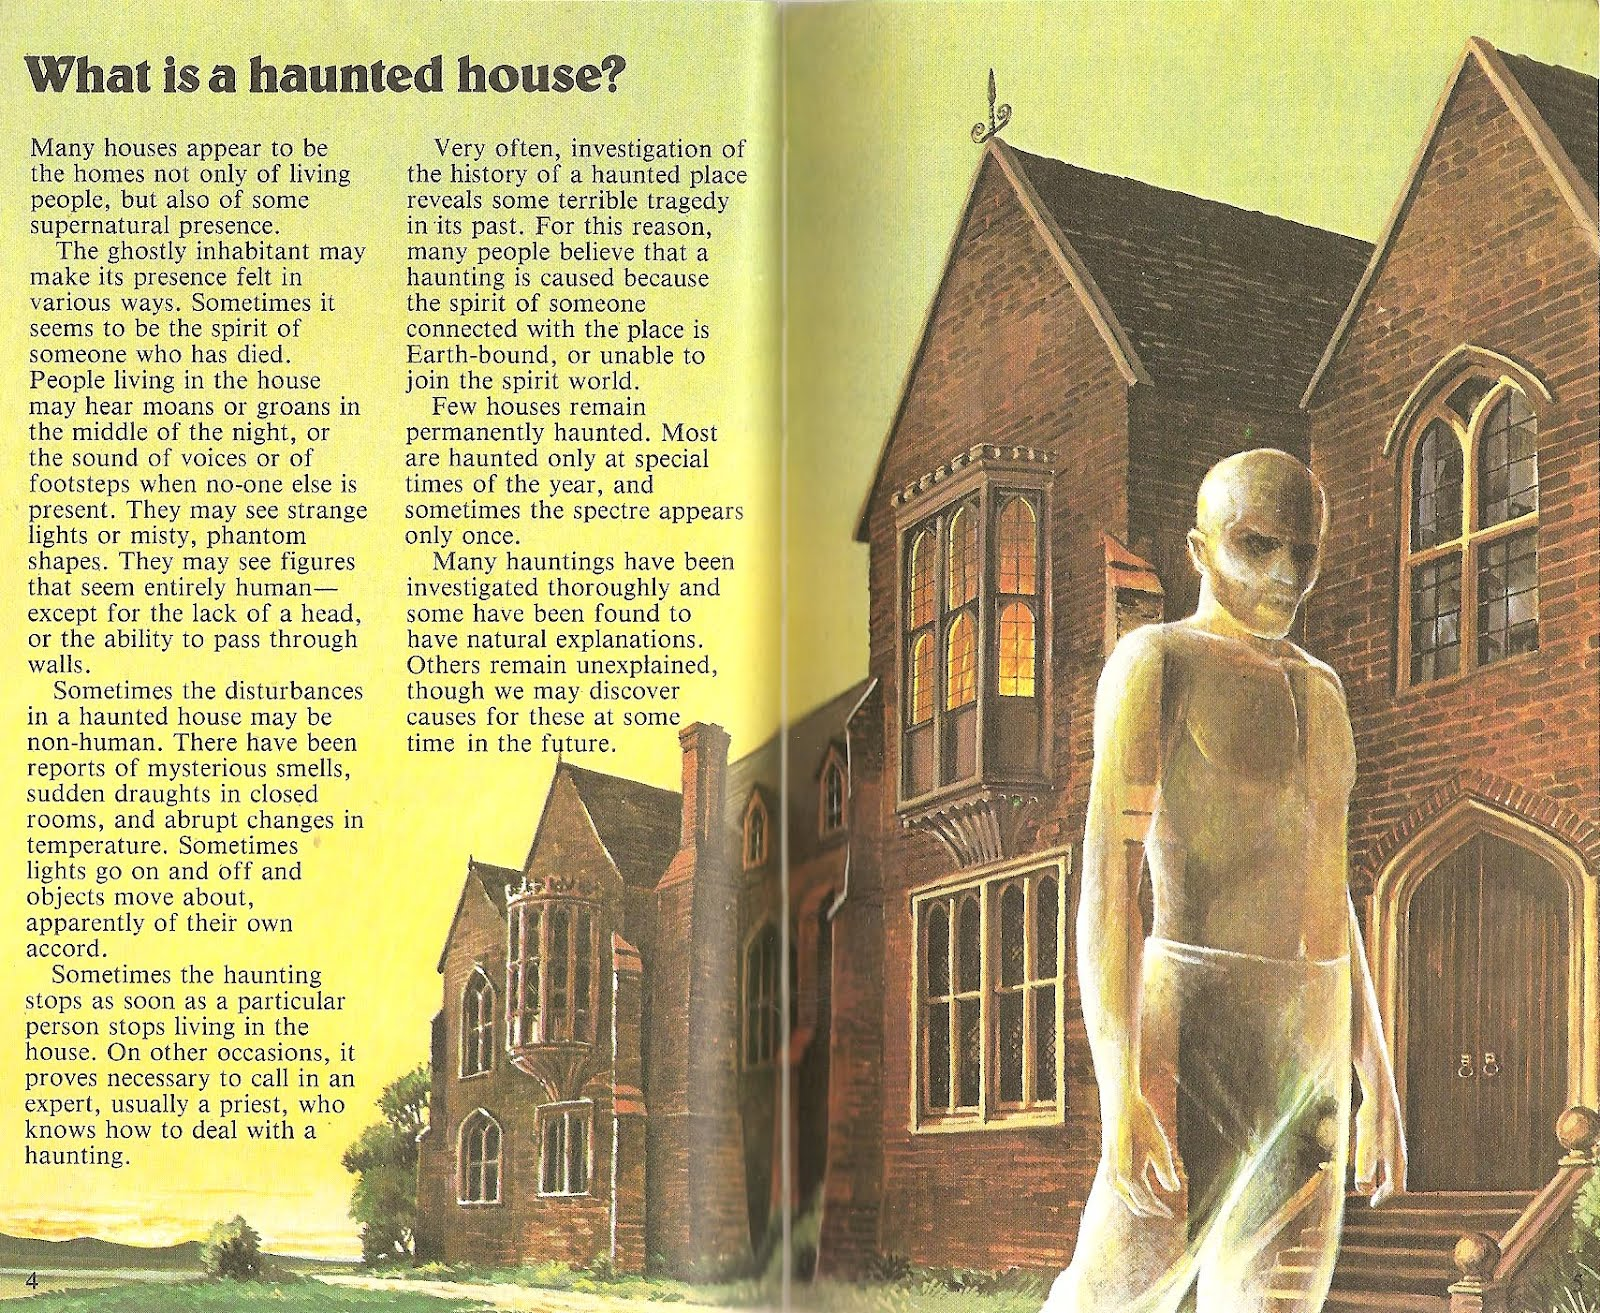 The haunted closet haunted houses ghosts spectres for Classic haunted house novels